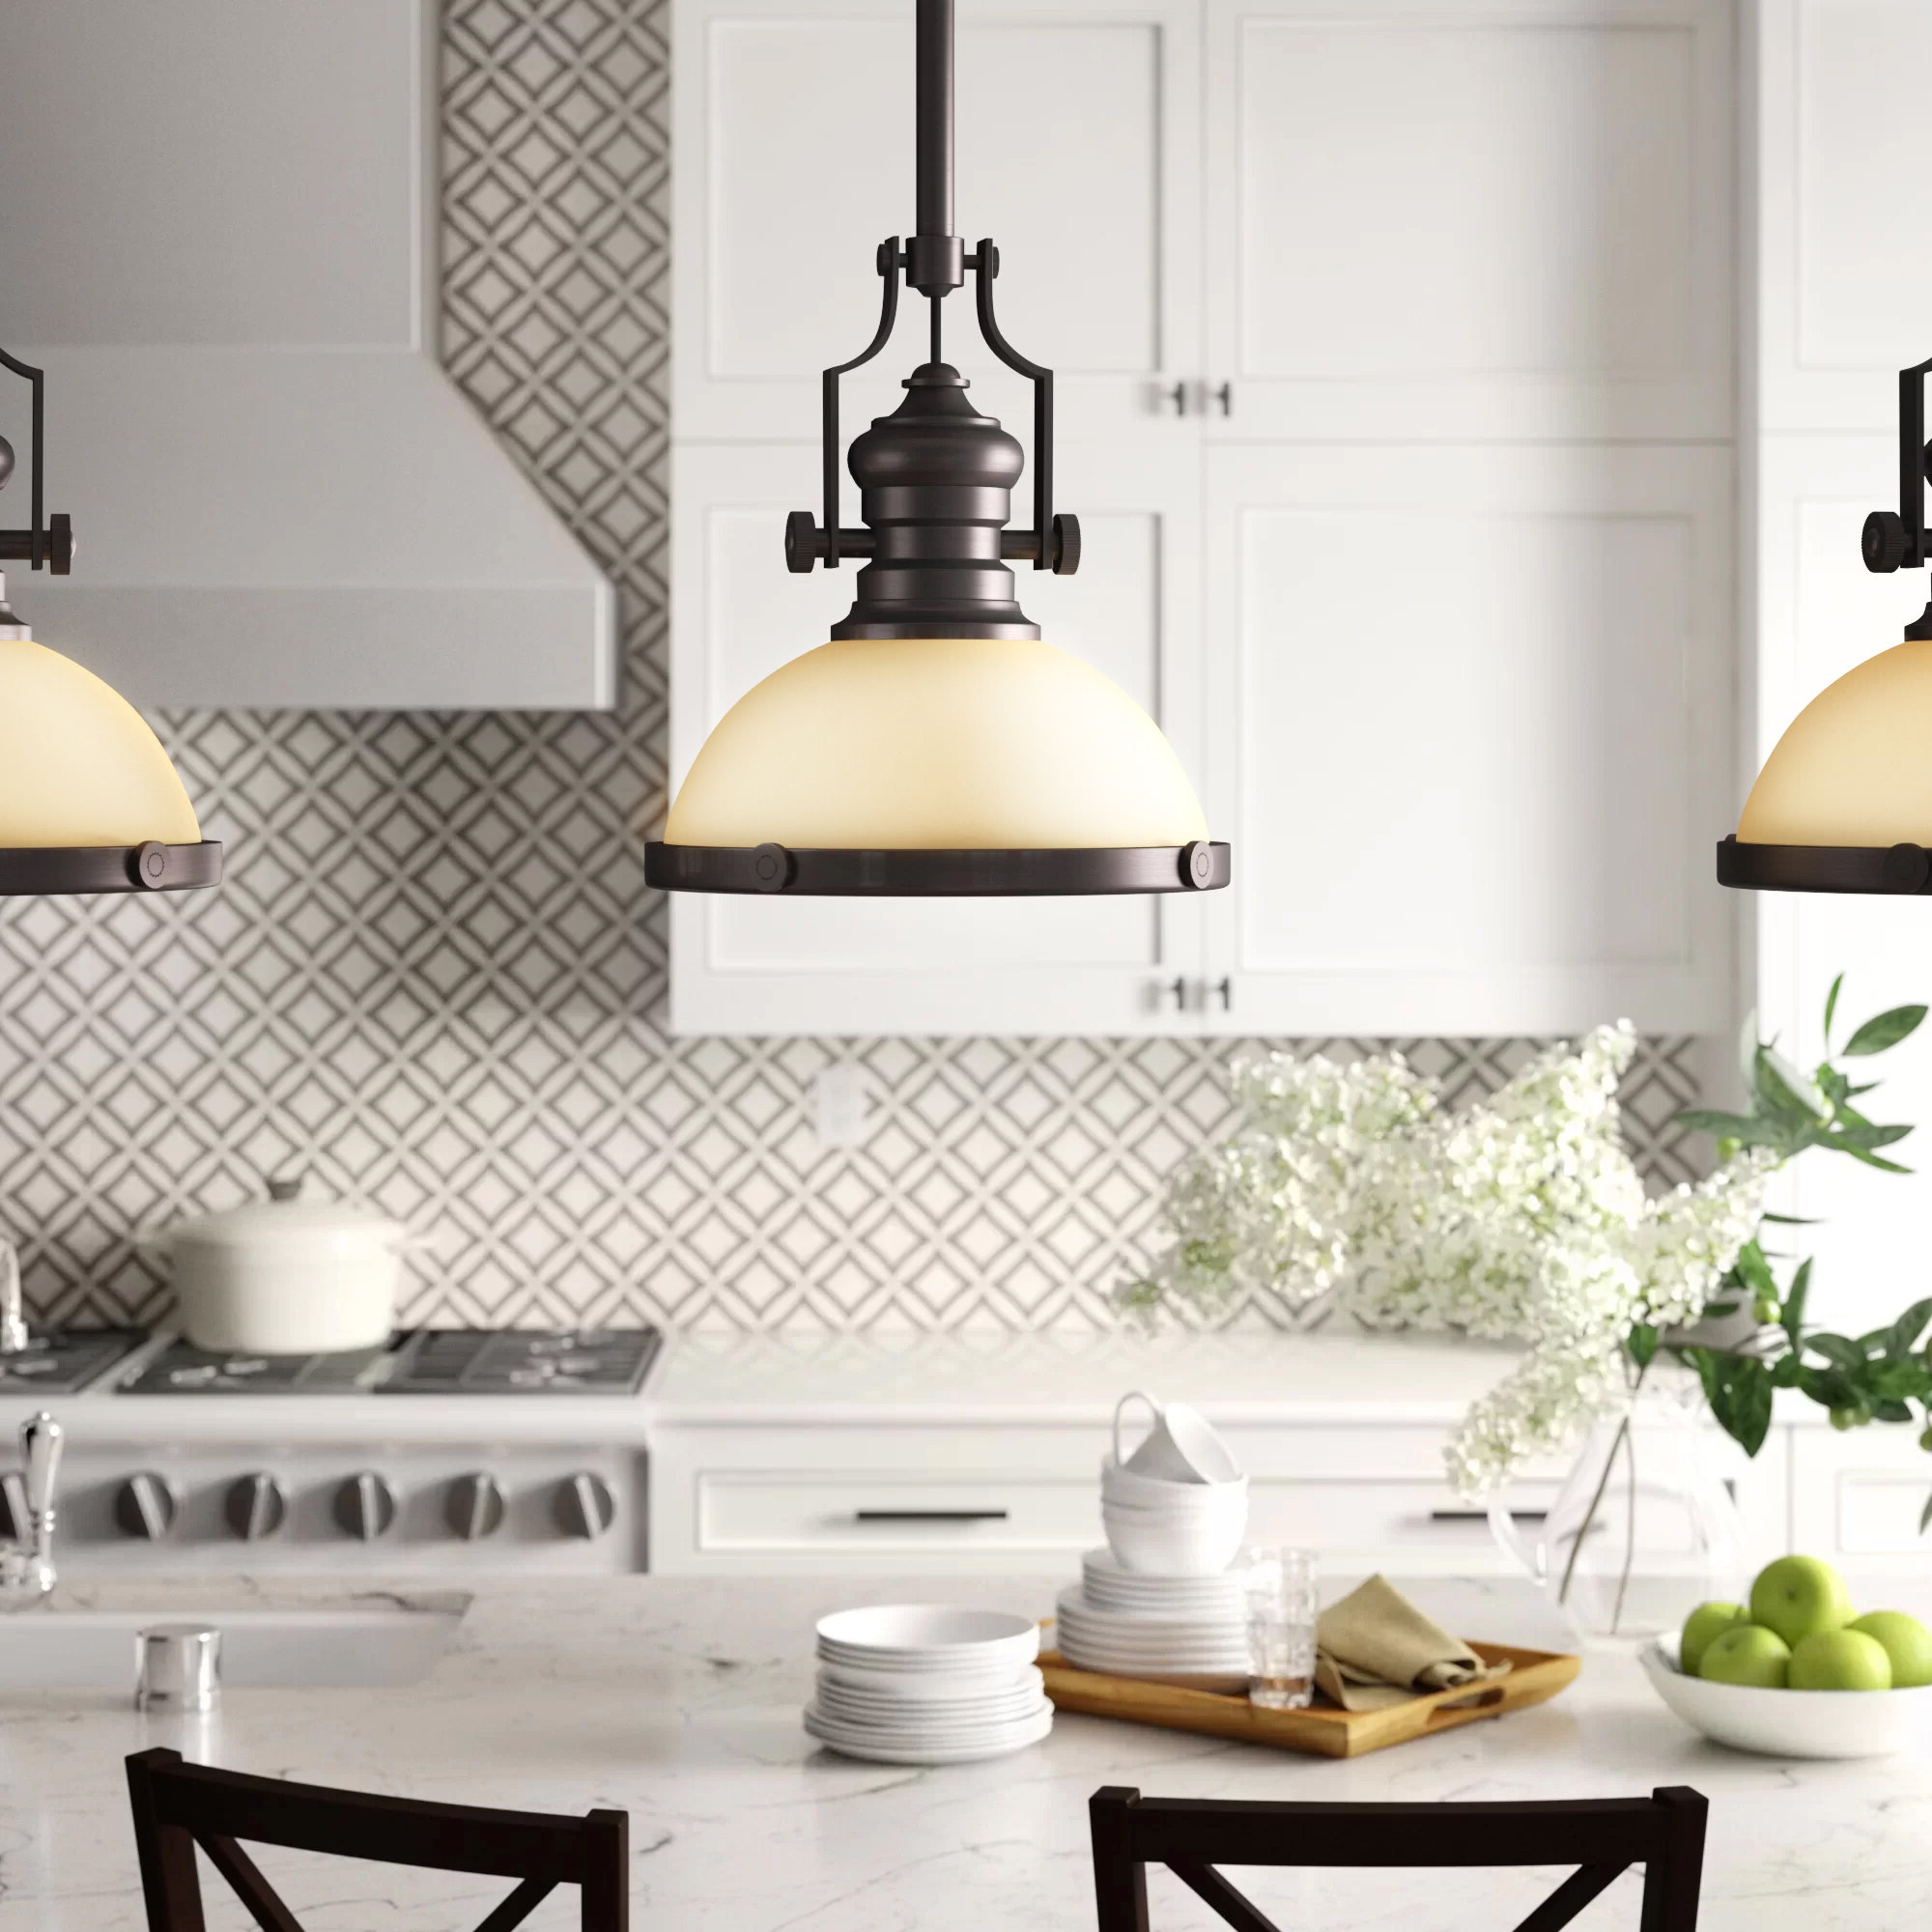 Breakwater Bay Priston 1-Light Single Dome Pendant with Current Ninette 1-Light Dome Pendants